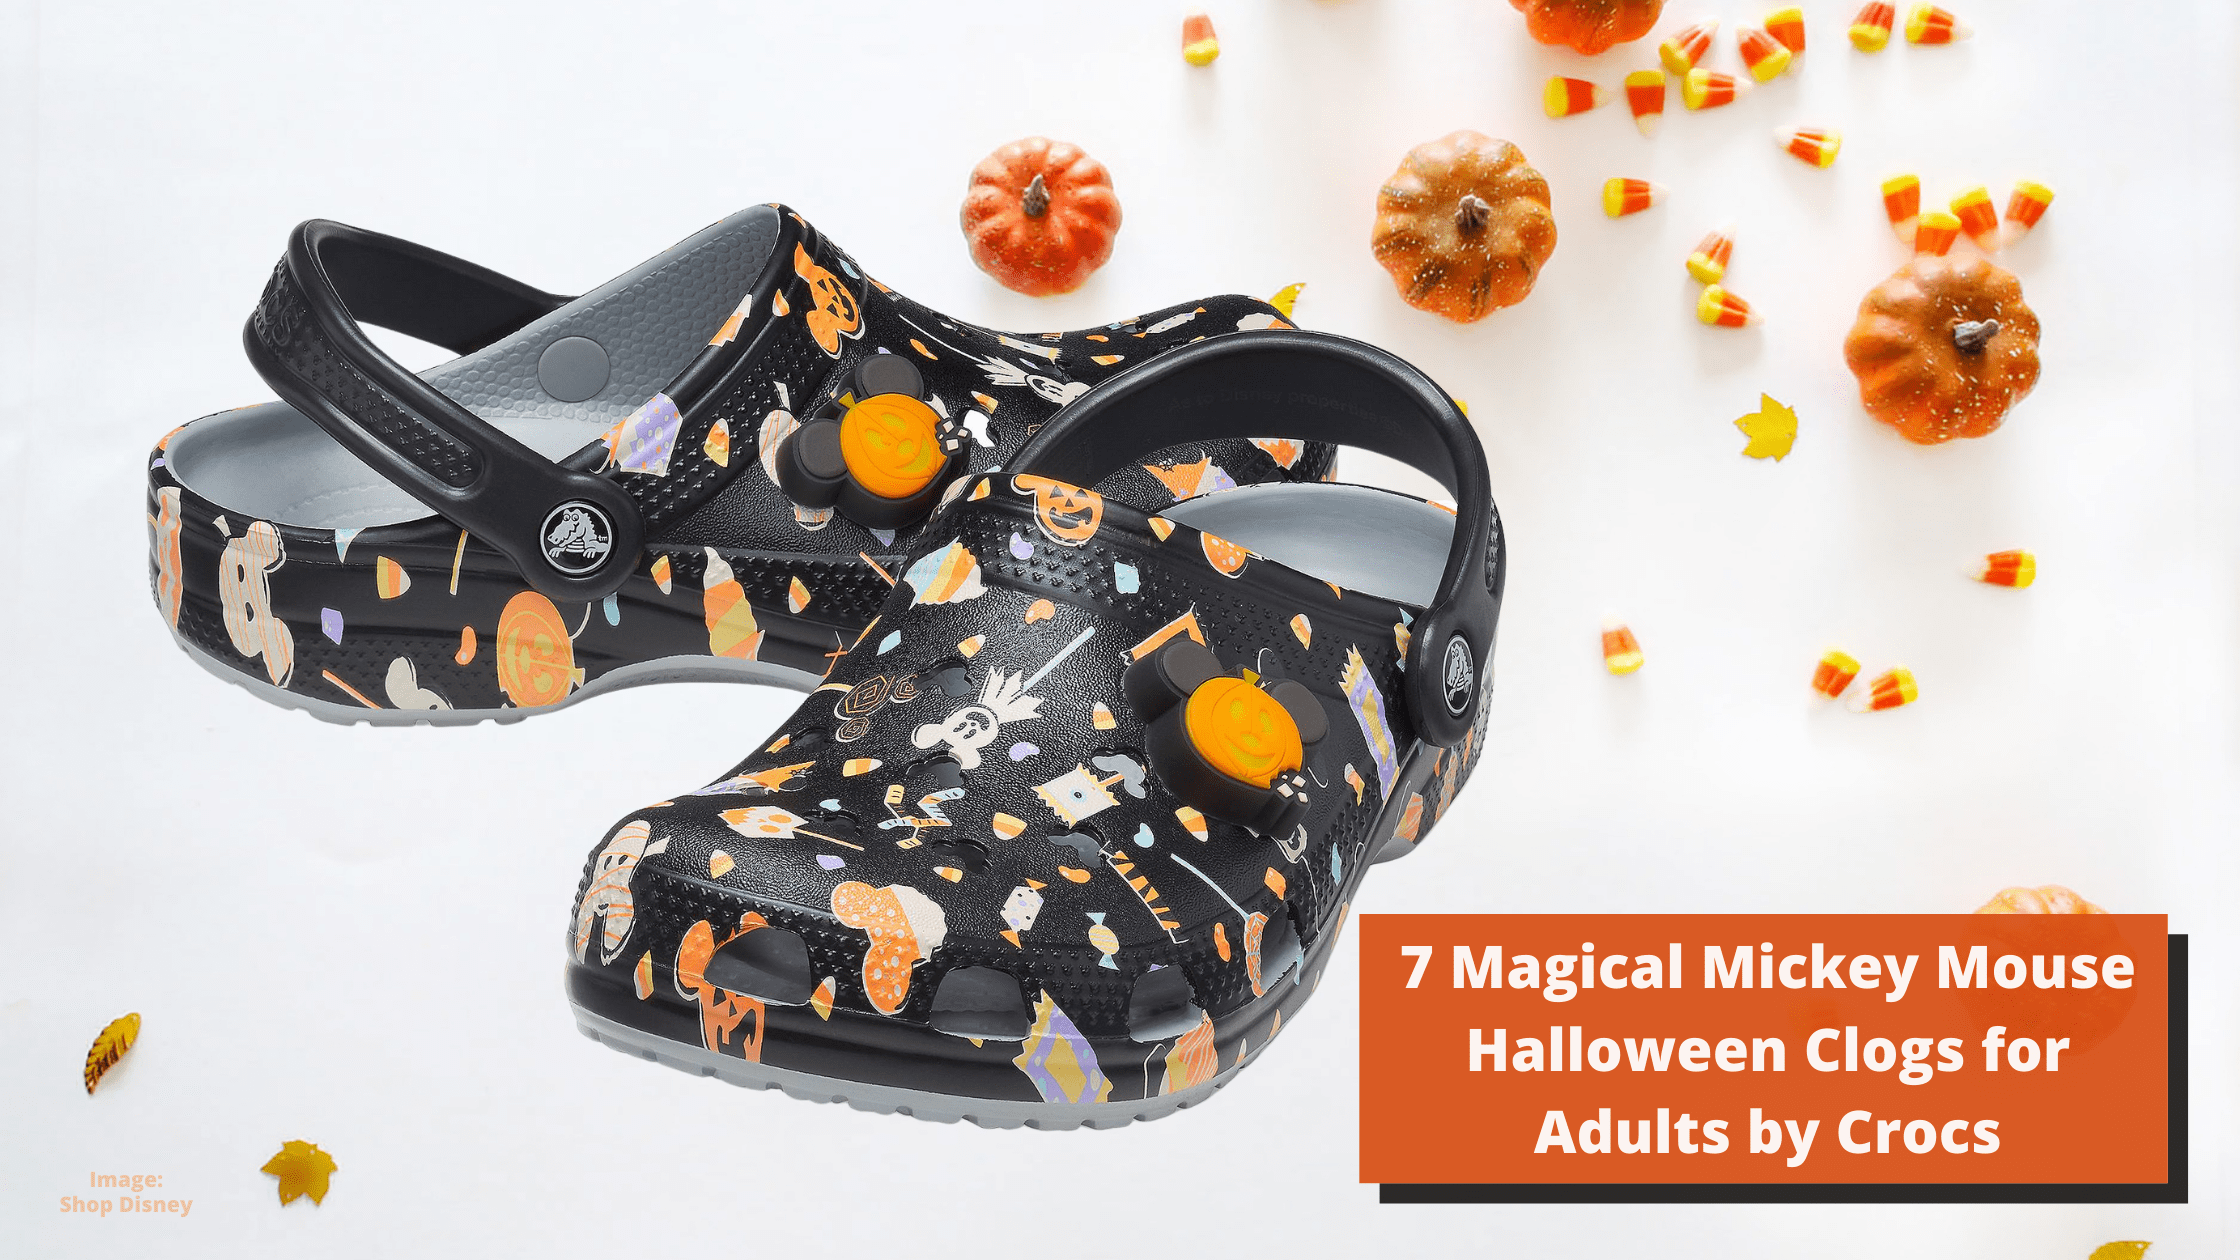 7-Magical-Mickey-Mouse-Halloween-Clogs-for-Adults-by-Crocs-Banner